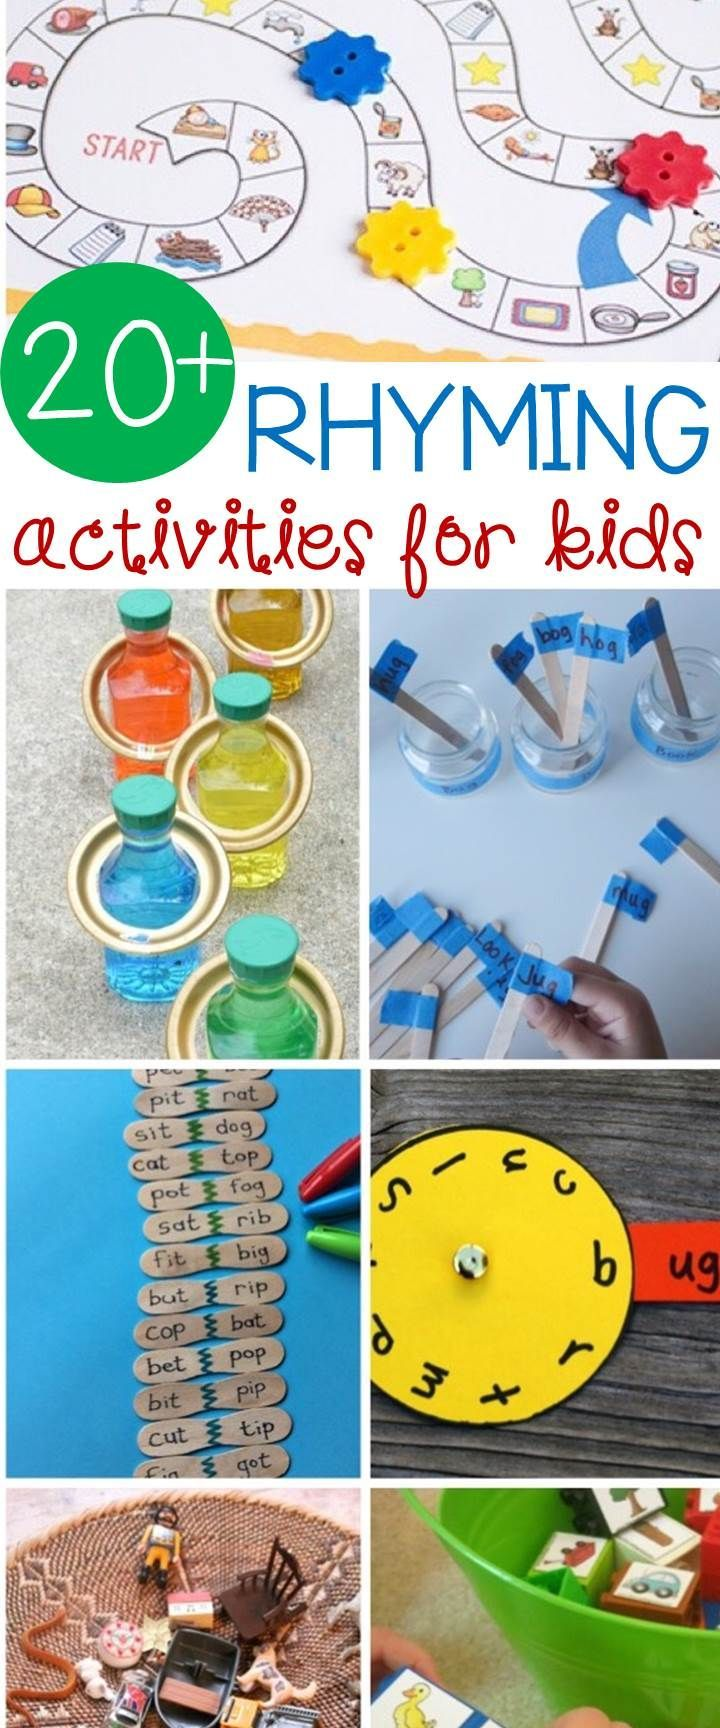 Simple Easy And Fun Rhyming Activities For Kids Rhyming